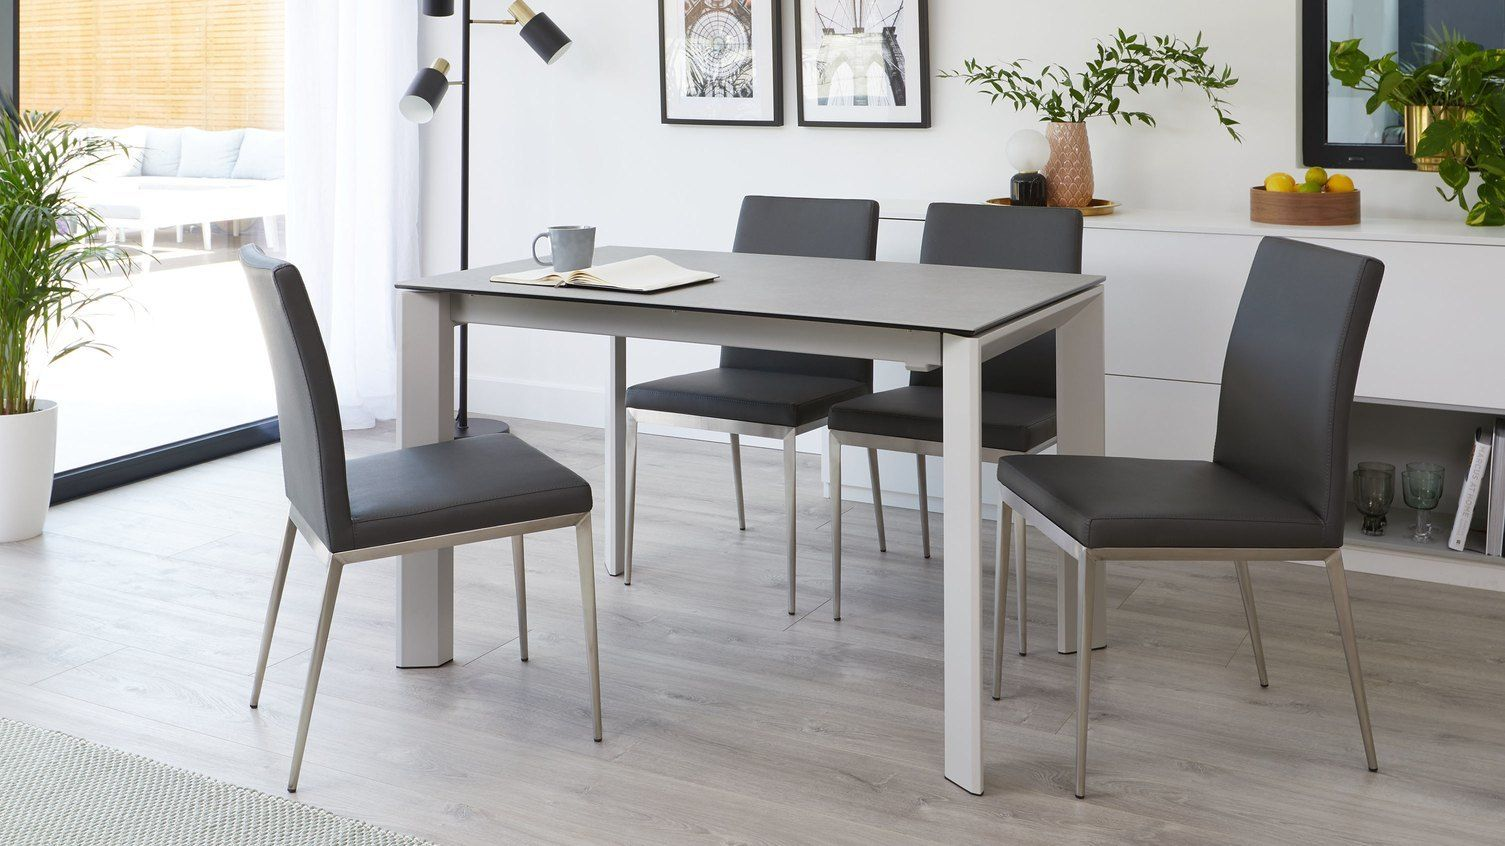 Louis Light Grey Ceramic Extending Dining Table - unextended